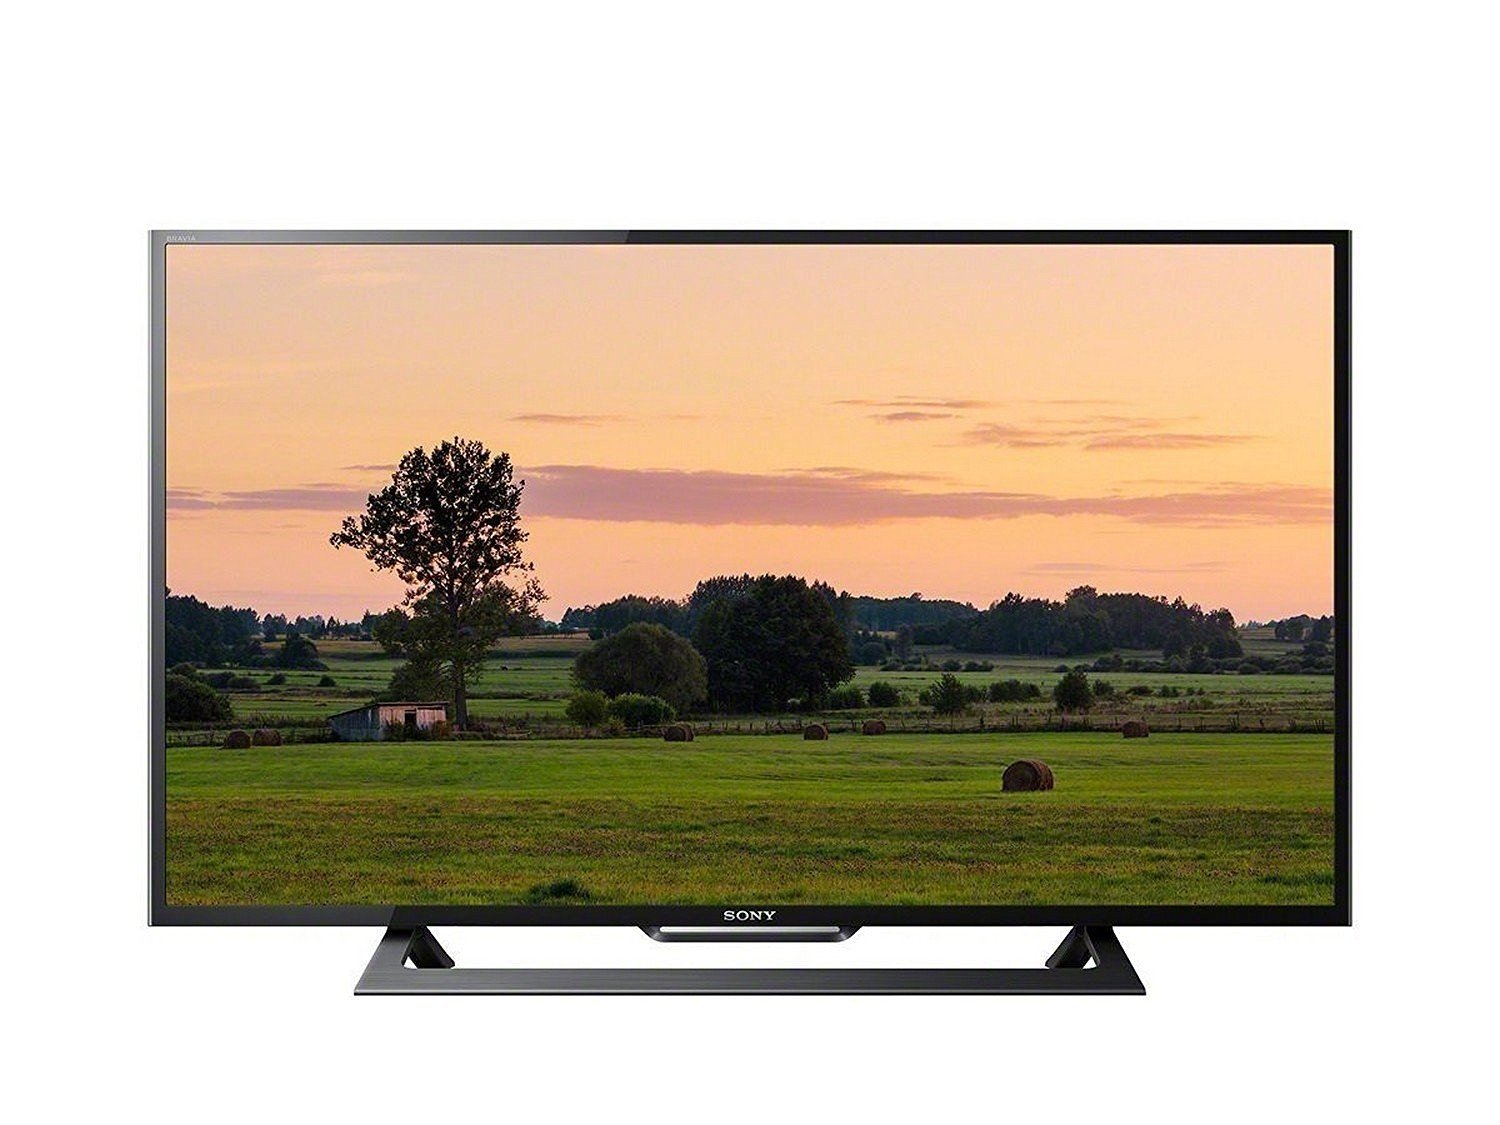 Top 5 Selling Best Sony Led TV Under Rs 40000 In India 2018